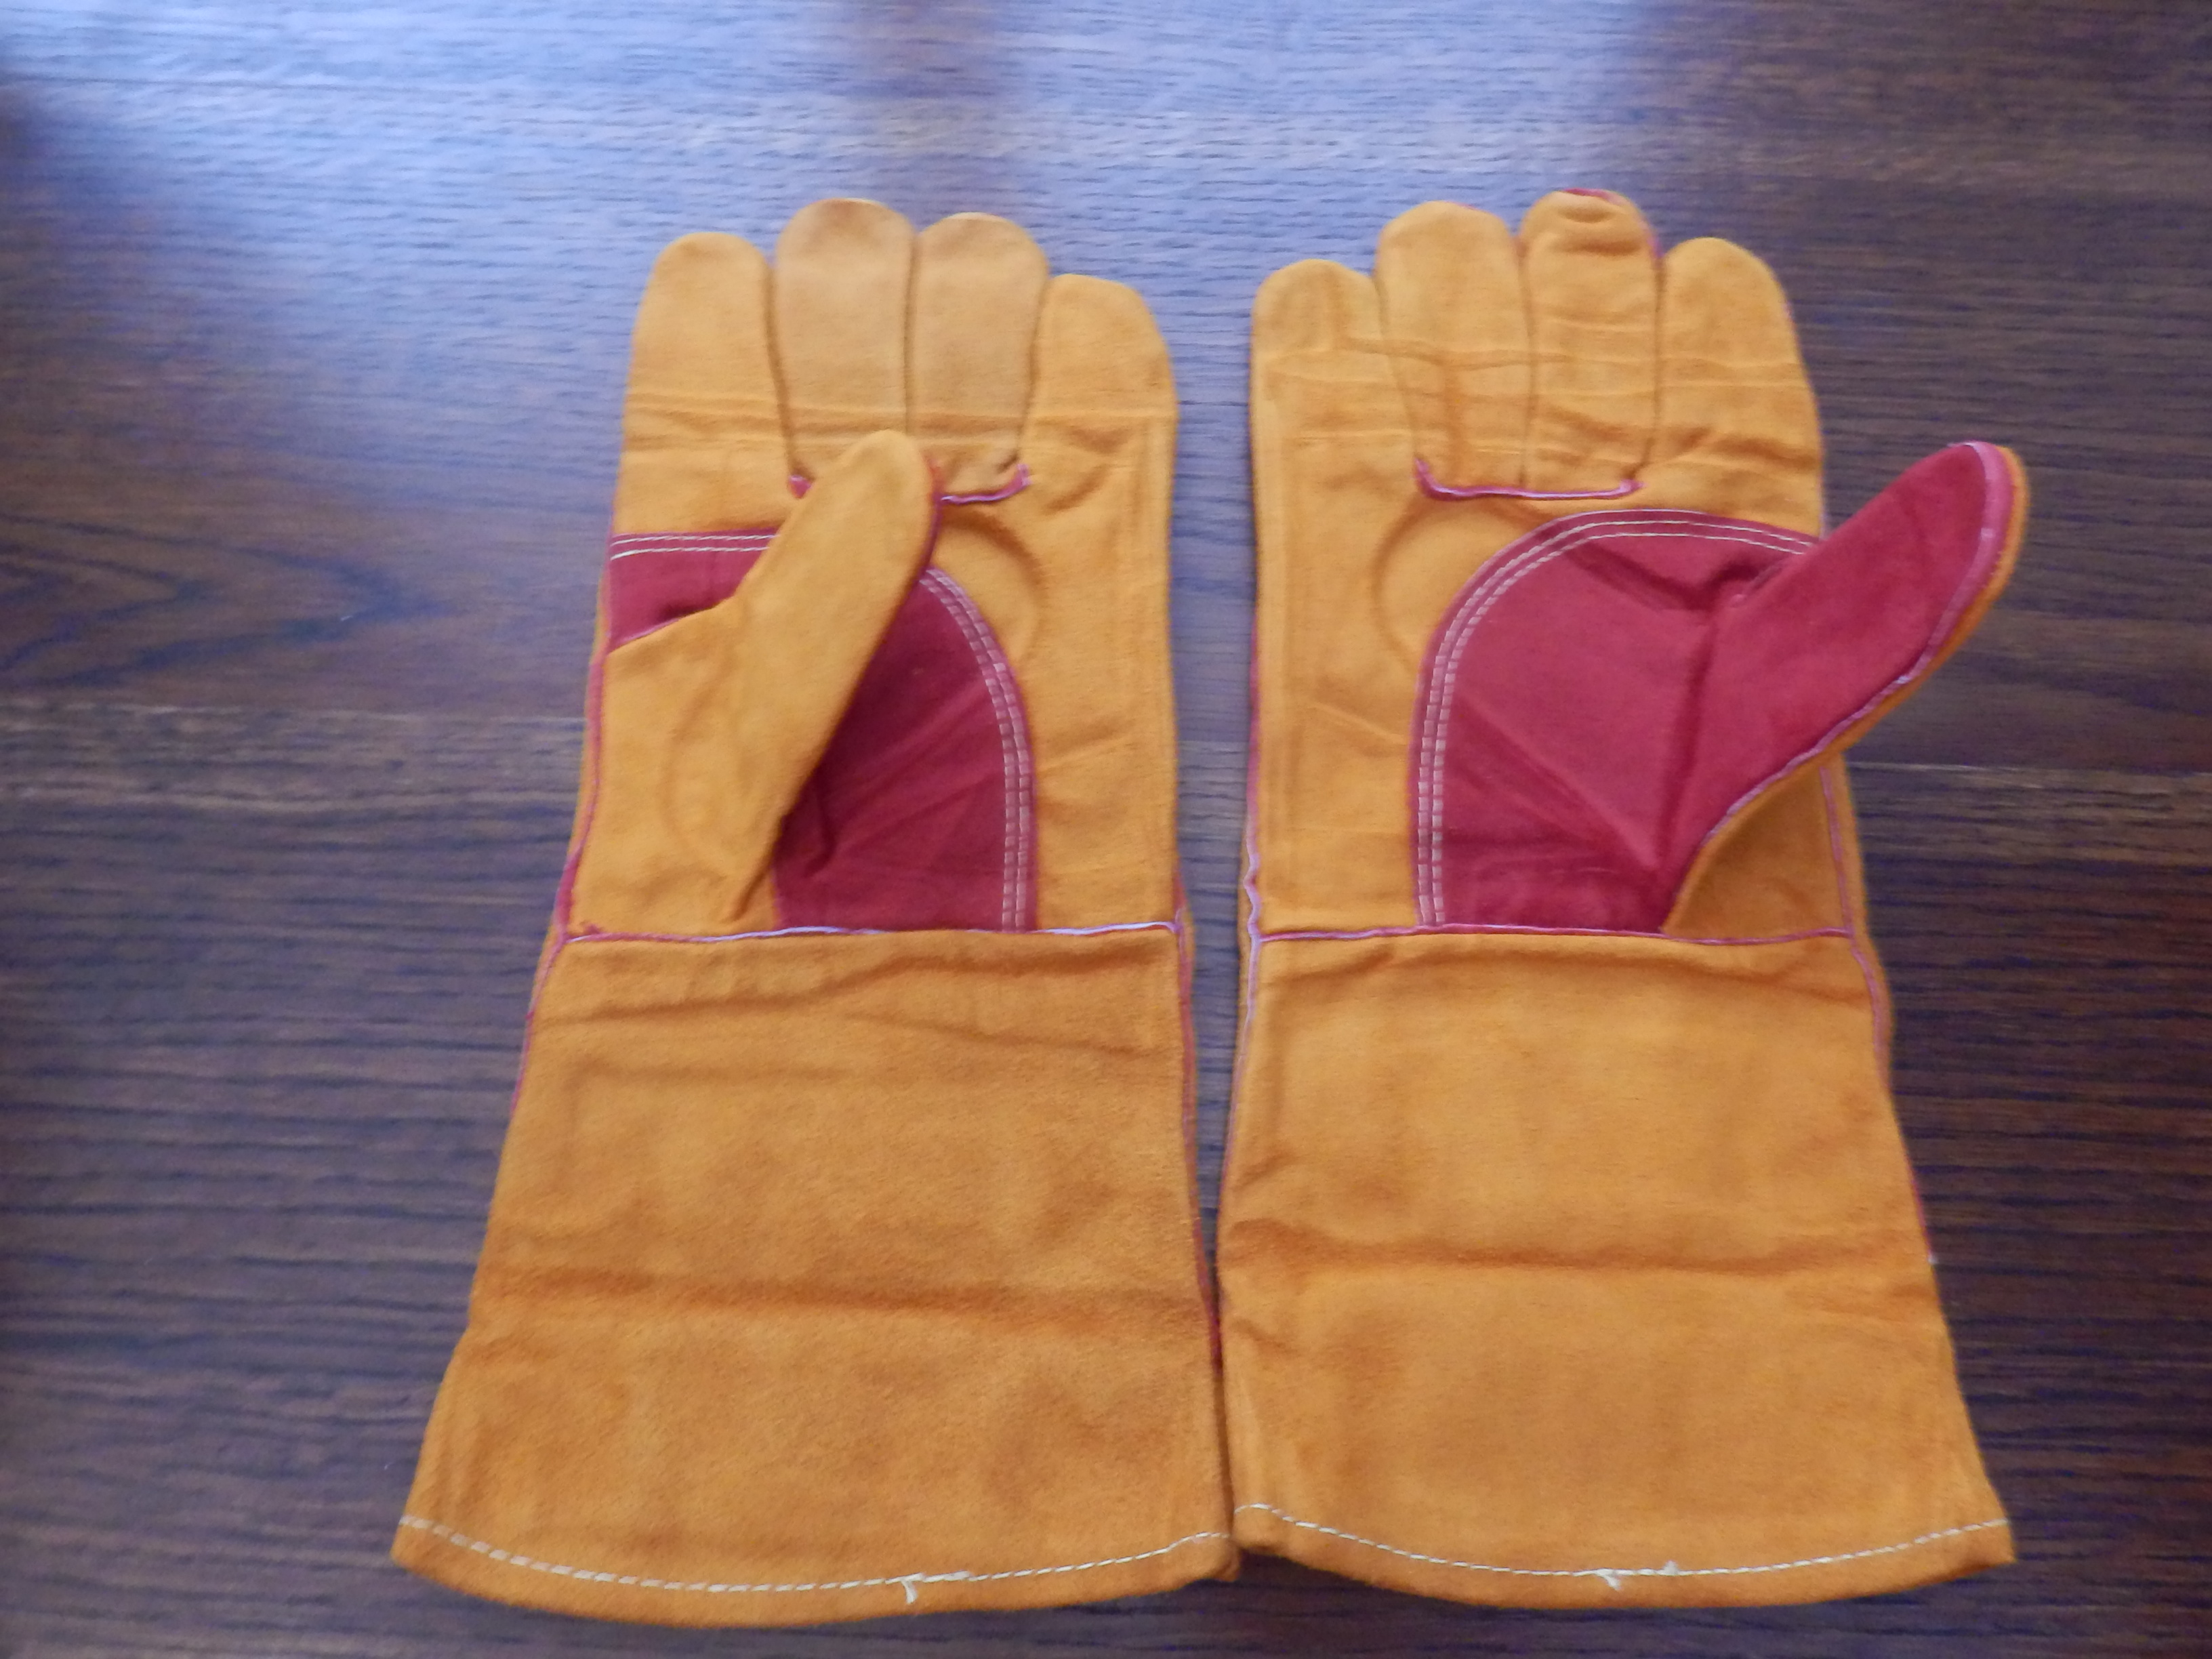 Cowhide Leather Reinforced and Protective Gardening Gloves by Gateway